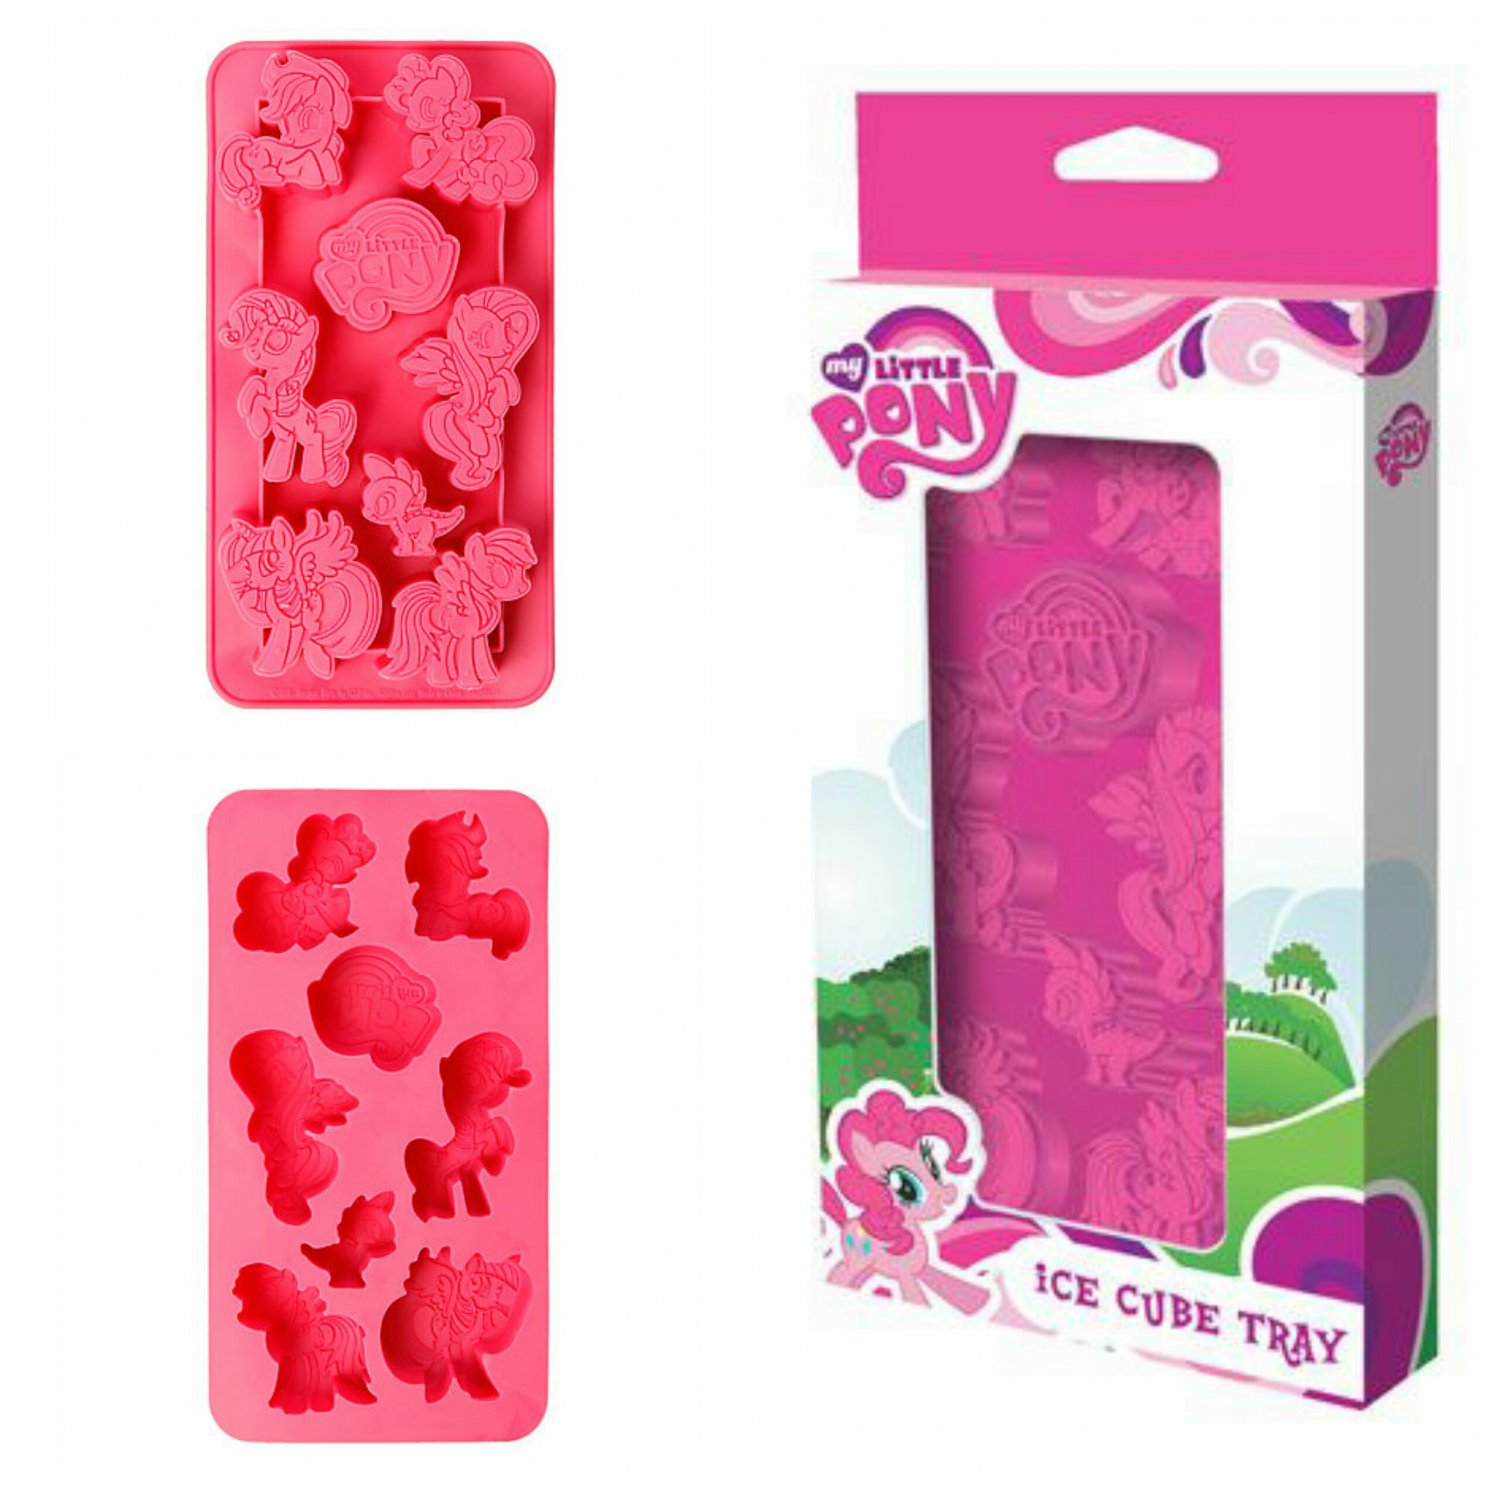 Special Edition Collector's My Little Pony Silicone Ice Cube Tray by ICUP #38619